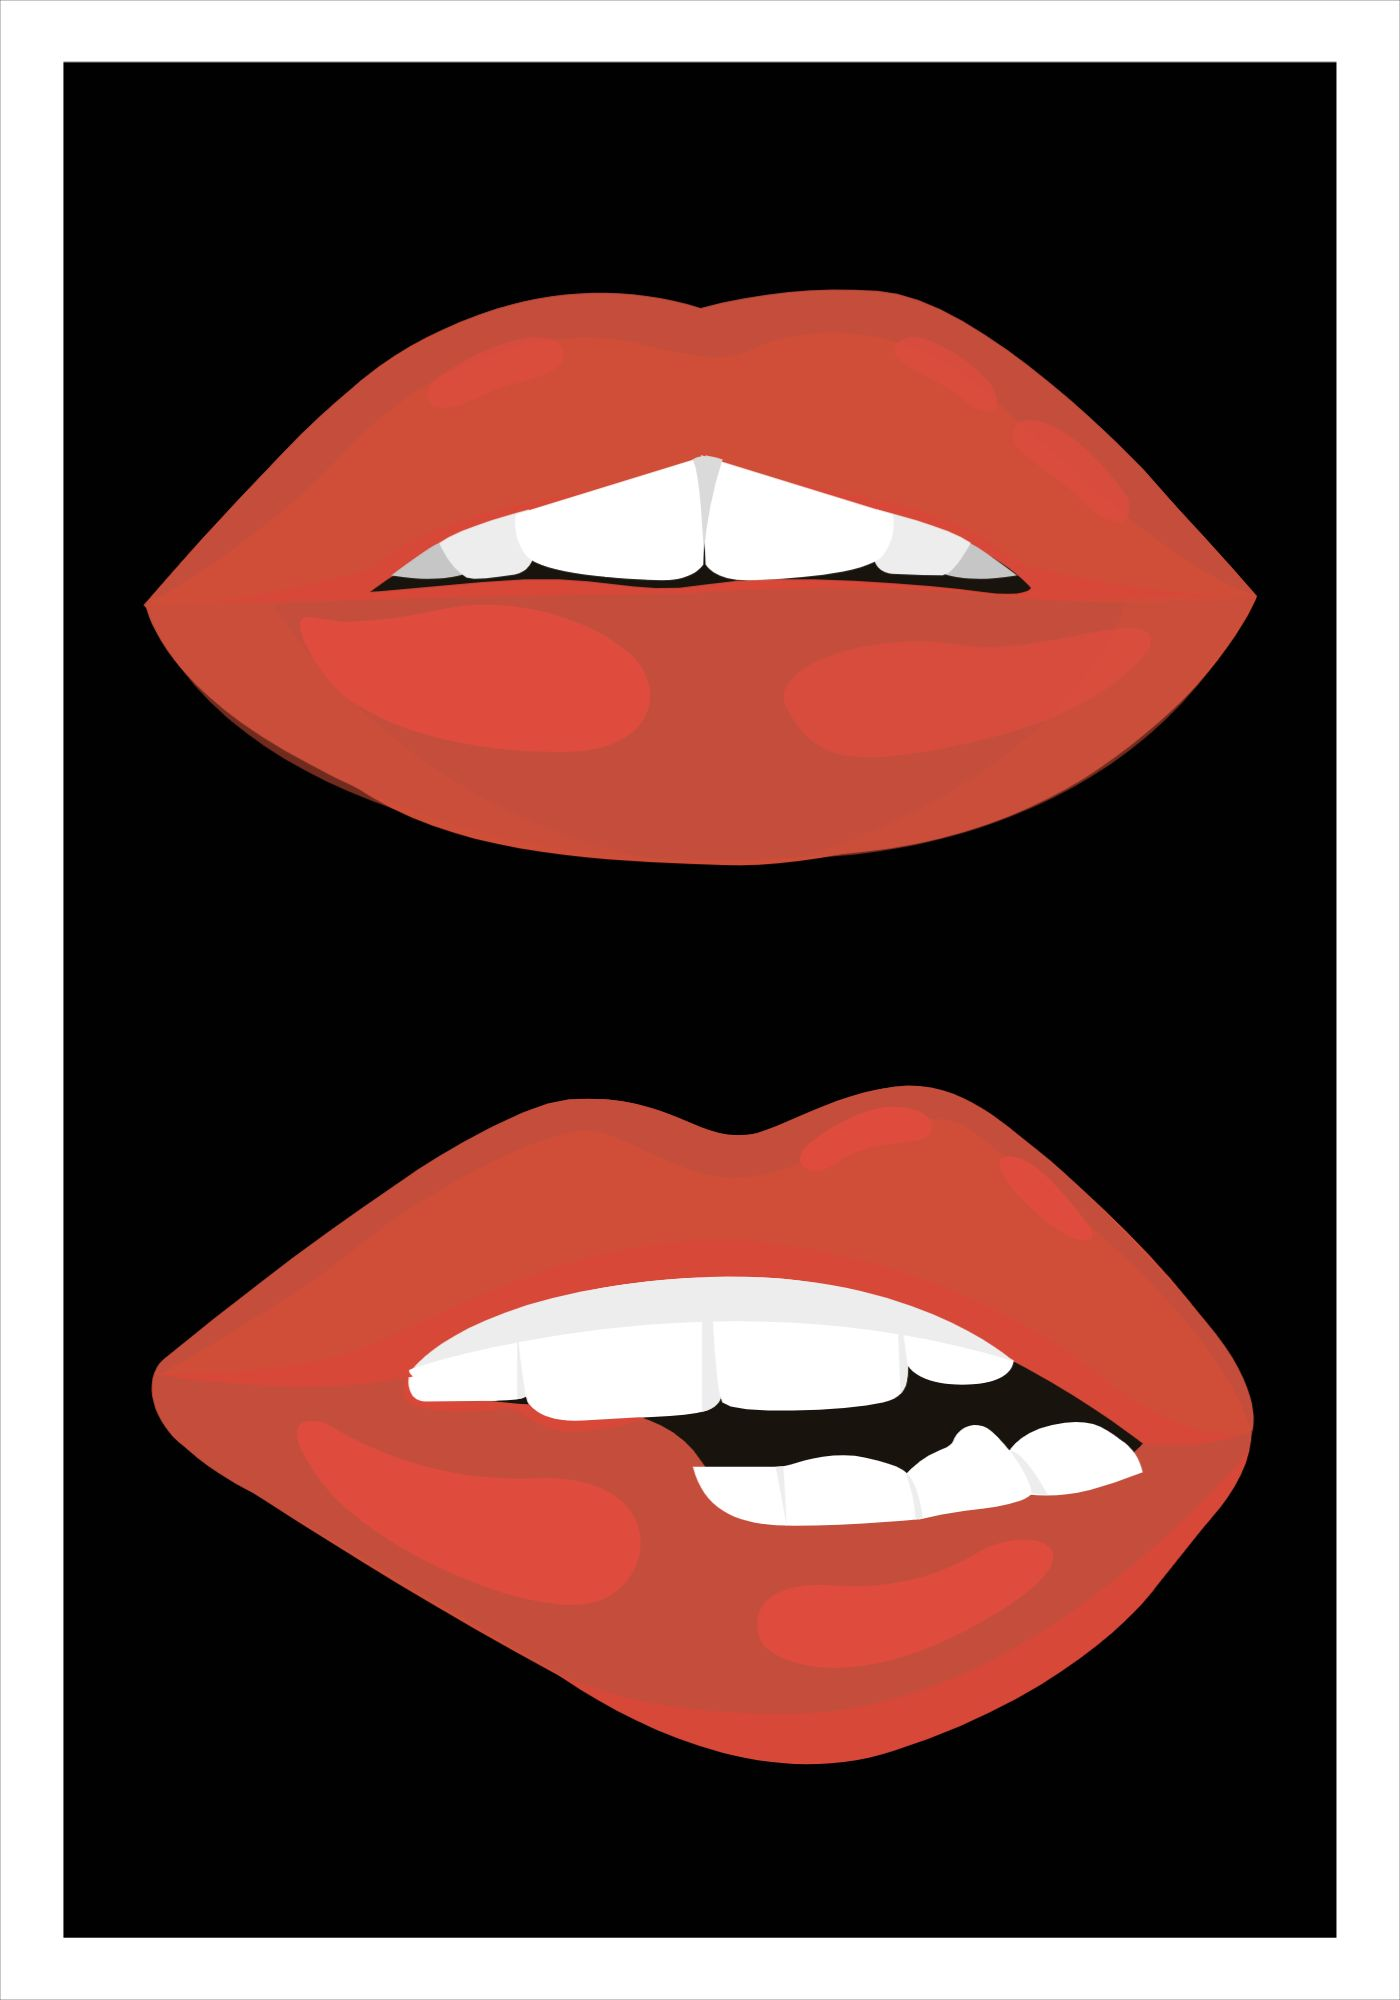 Lips Poster Template